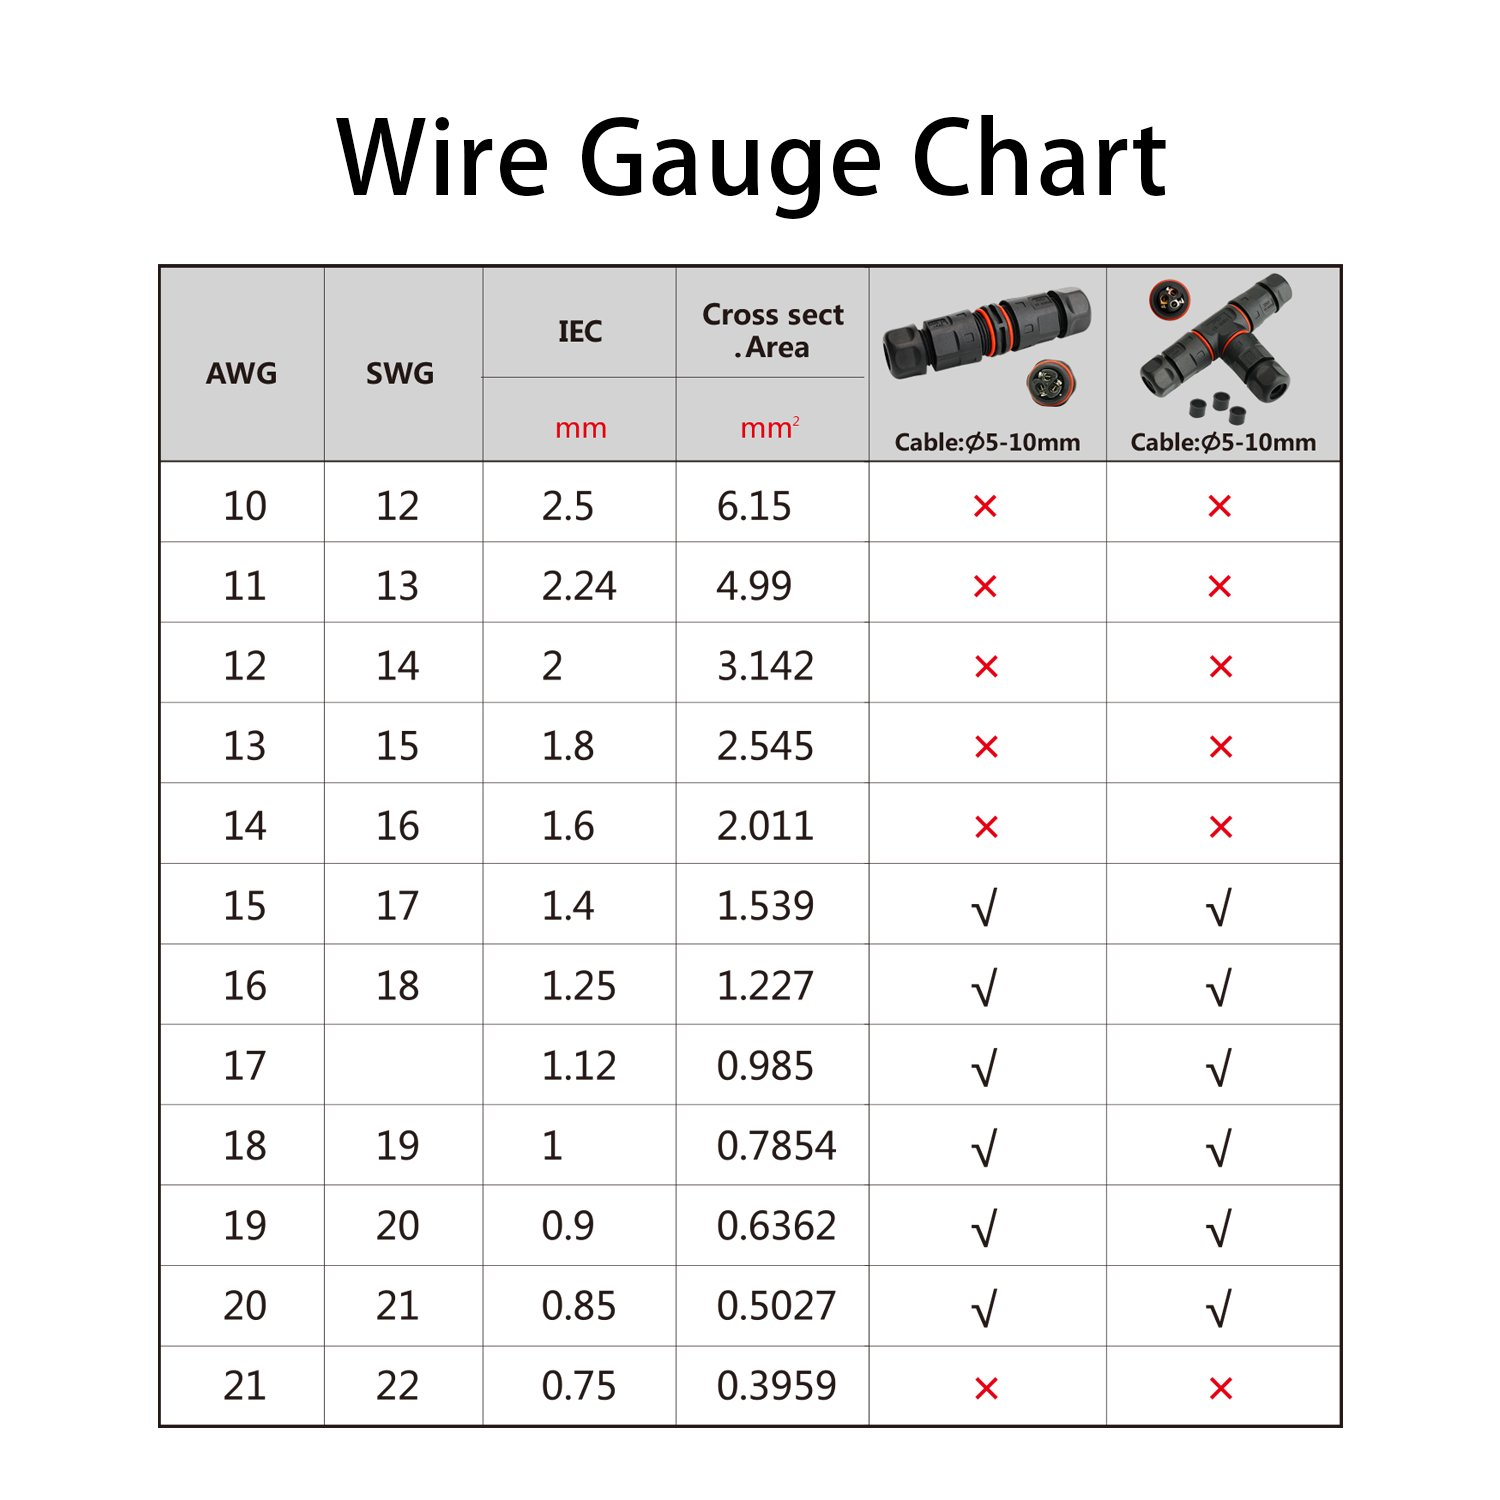 Awesome electrical cable size chart amps images electrical great electrical cable size chart amps ideas electrical circuit greentooth Image collections